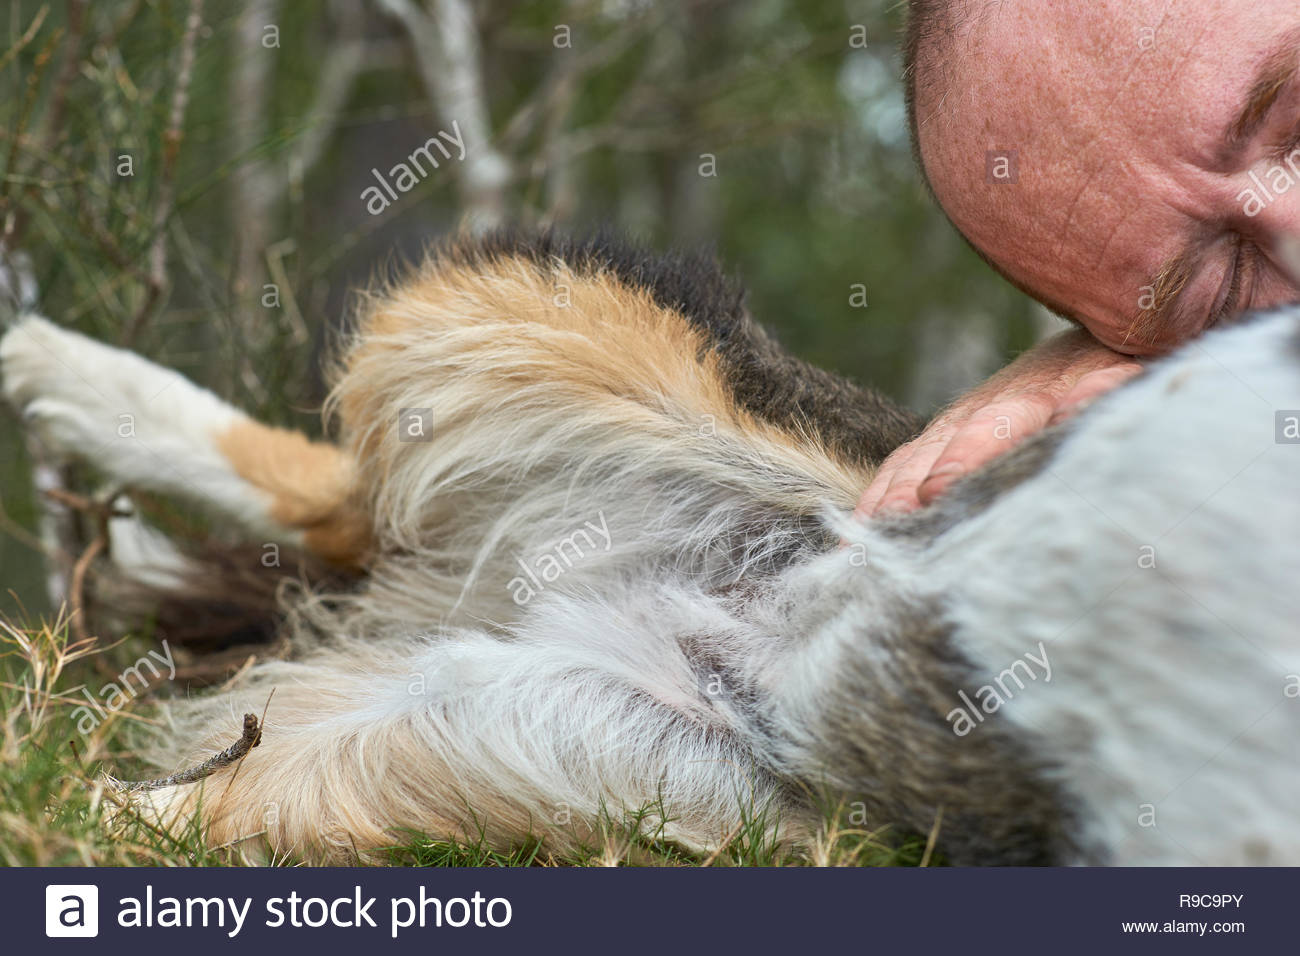 A middle-aged Caucasian male with eyes closed, resting his head on his pet dog's chest - long-haired tri-colored Border Collie - a man's best friend. - Stock Image